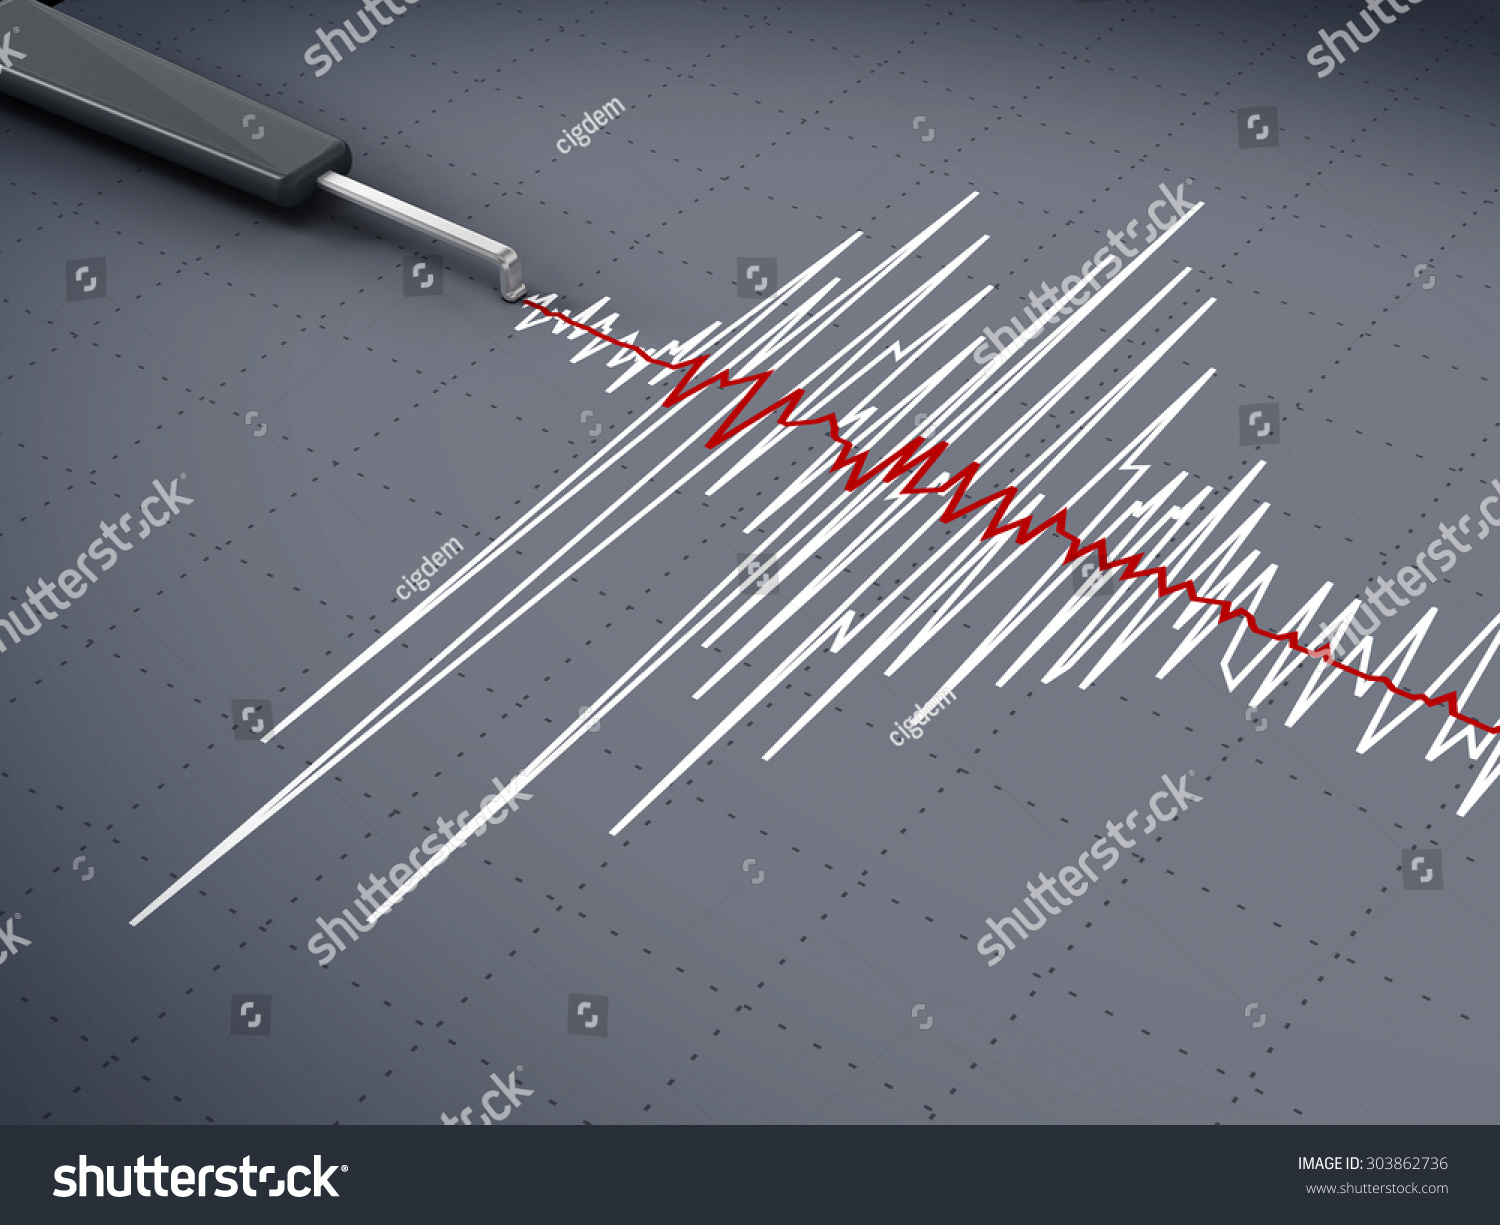 Seismic Activity Graph Showing An Earthquake Stock Photo